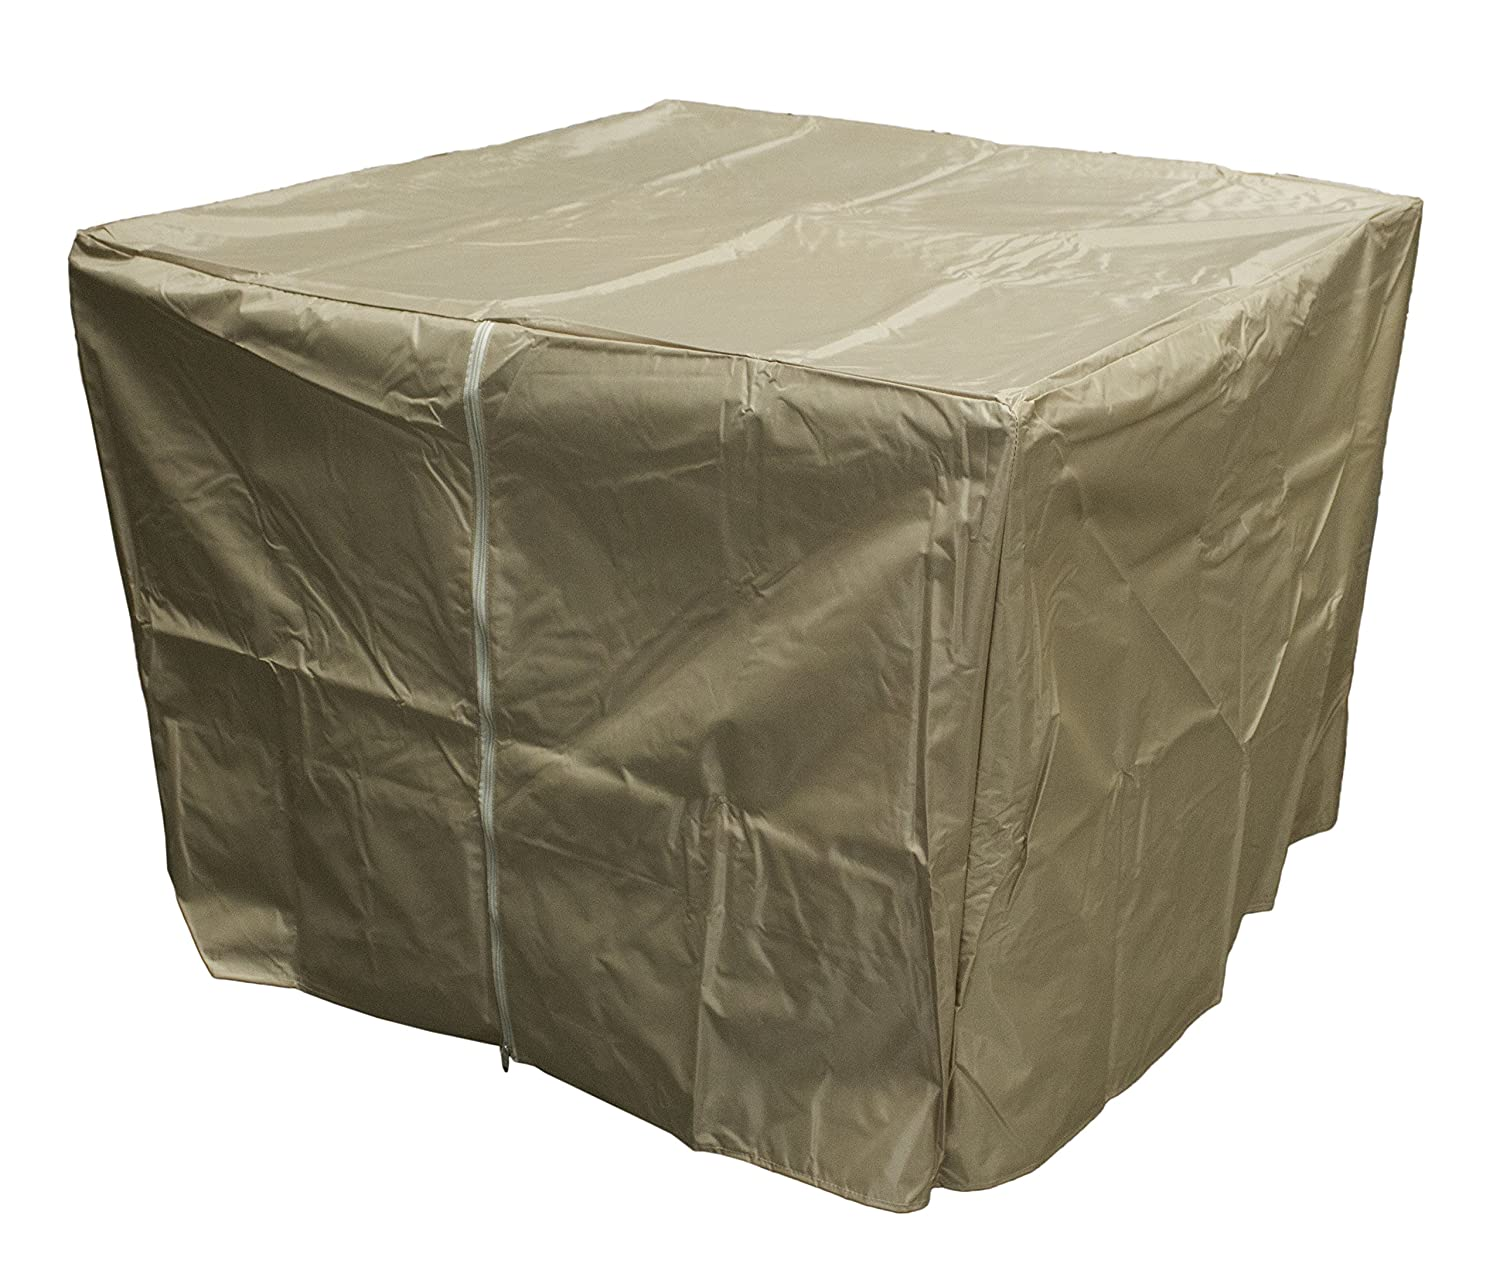 Hiland AZ Patio Heaters Fire Pit Cover, Heavy Duty Waterproof AZ Patio Heaters LLC GS-F-PCHDCV